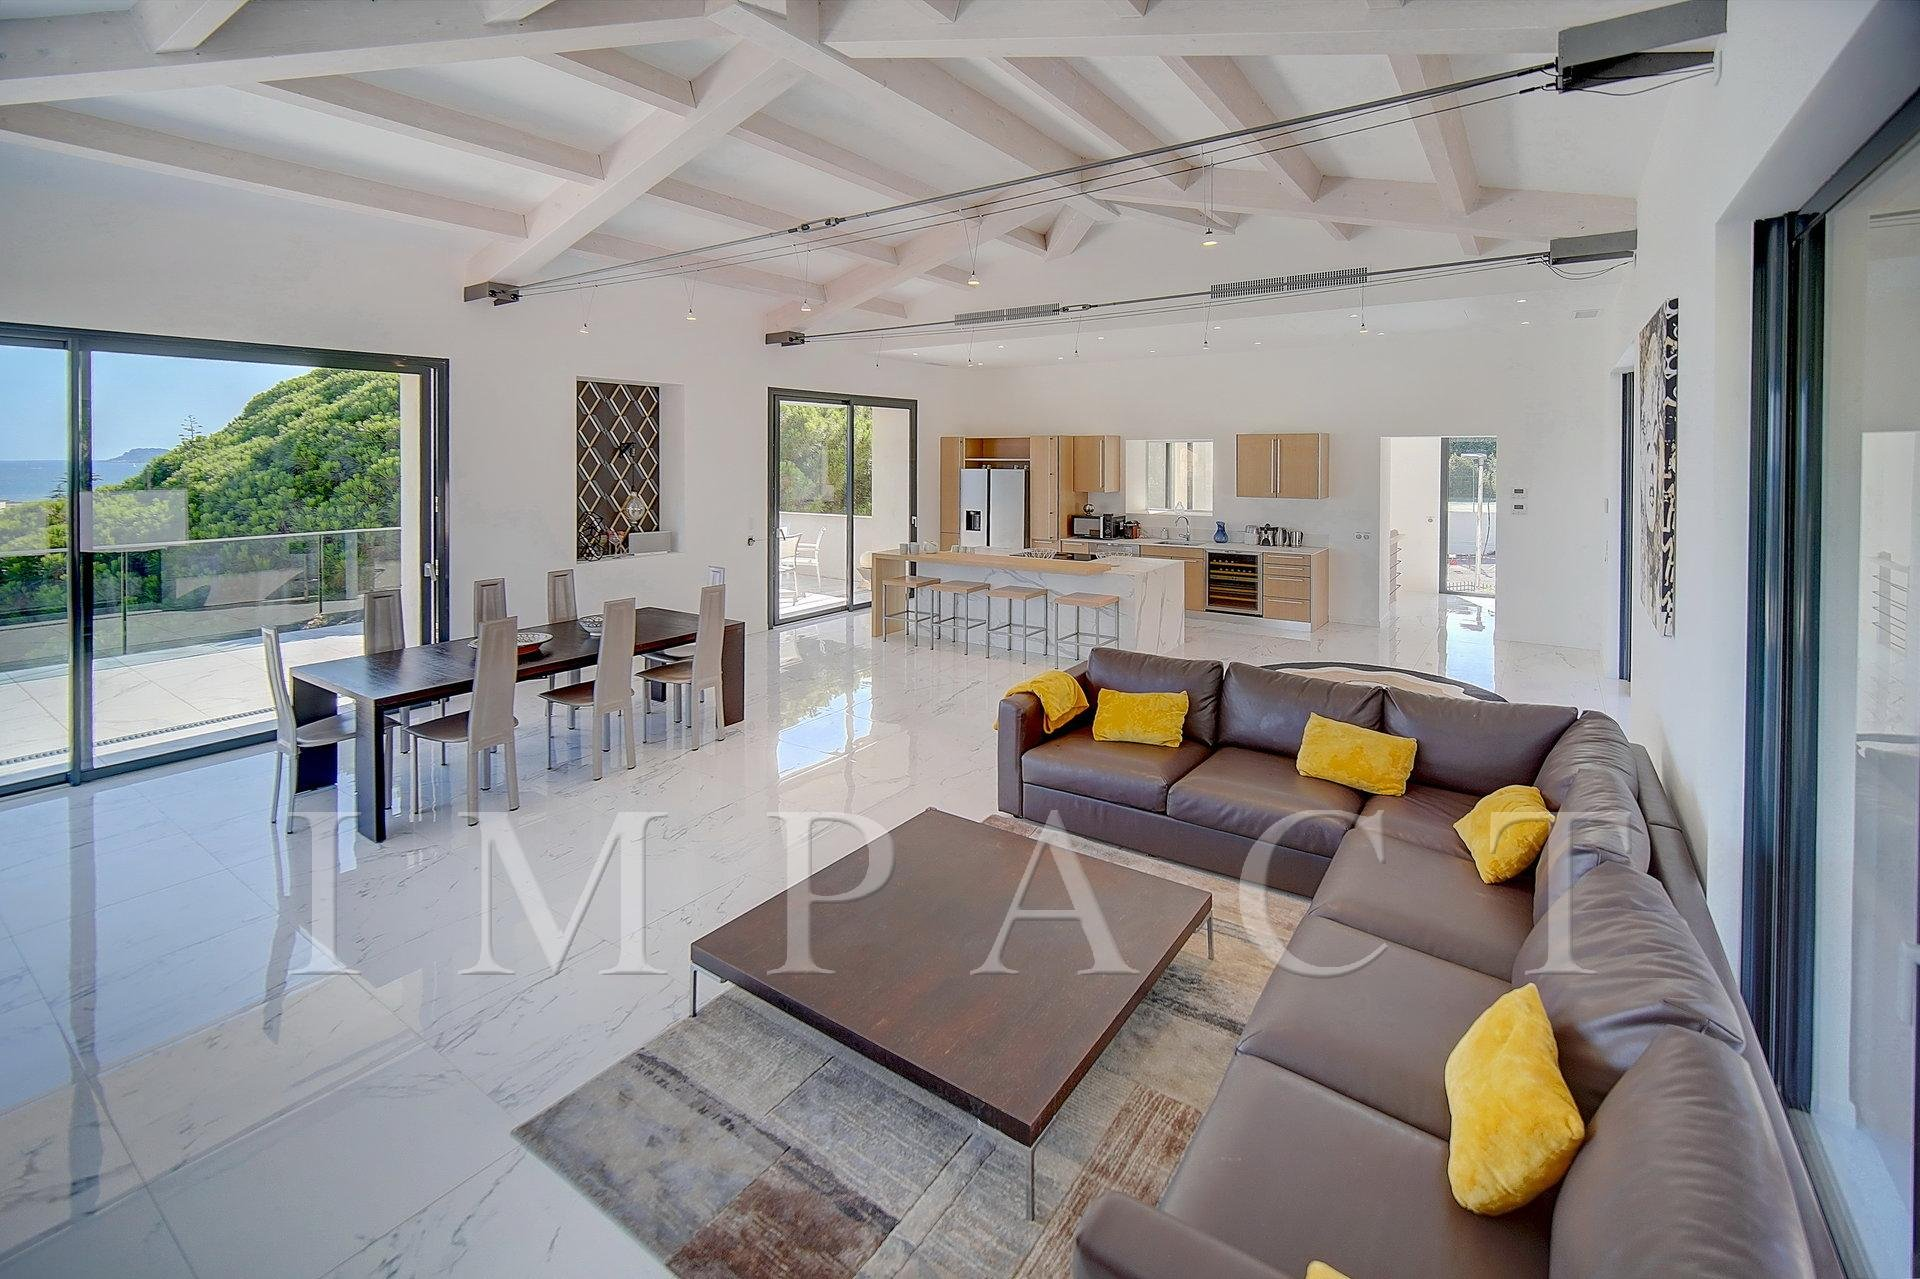 4 bedroom renovated villa with swimming pool to rent in Cannes